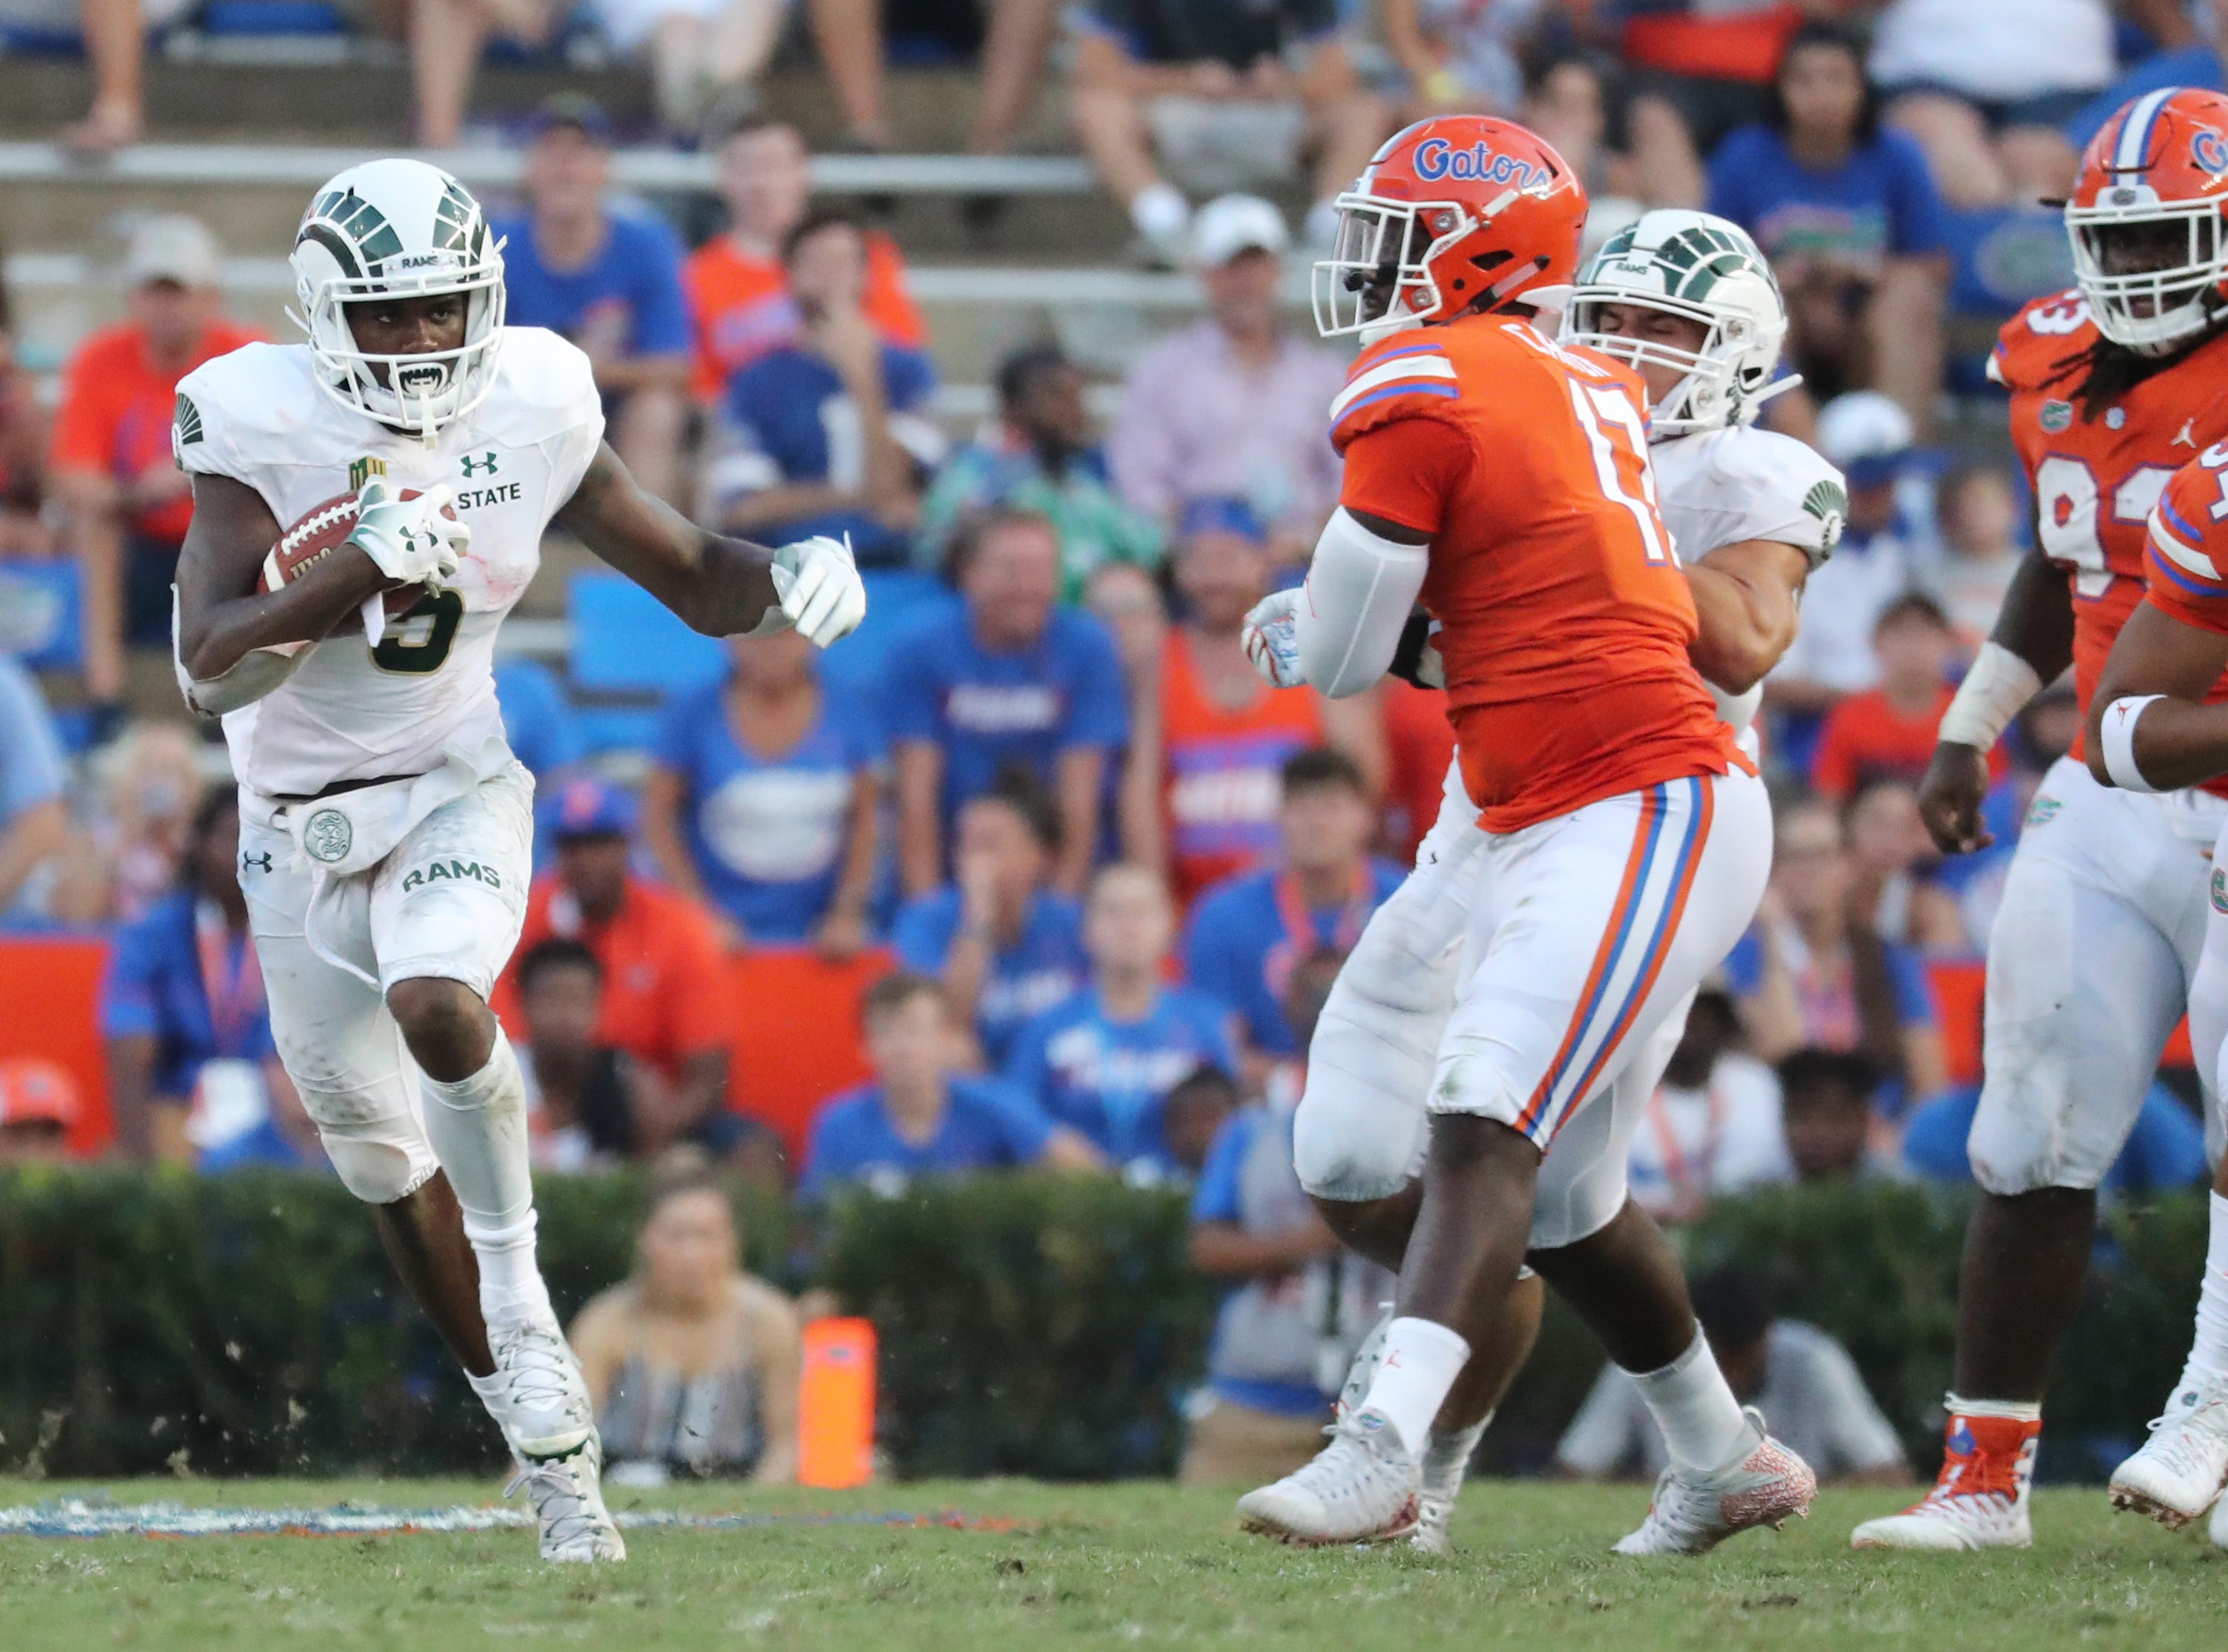 Sep 15, 2018; Gainesville, FL, USA; Colorado State Rams running back Marvin Kinsey Jr. (5) runs with the ball against the Florida Gators during the second half at Ben Hill Griffin Stadium. Mandatory Credit: Kim Klement-USA TODAY Sports